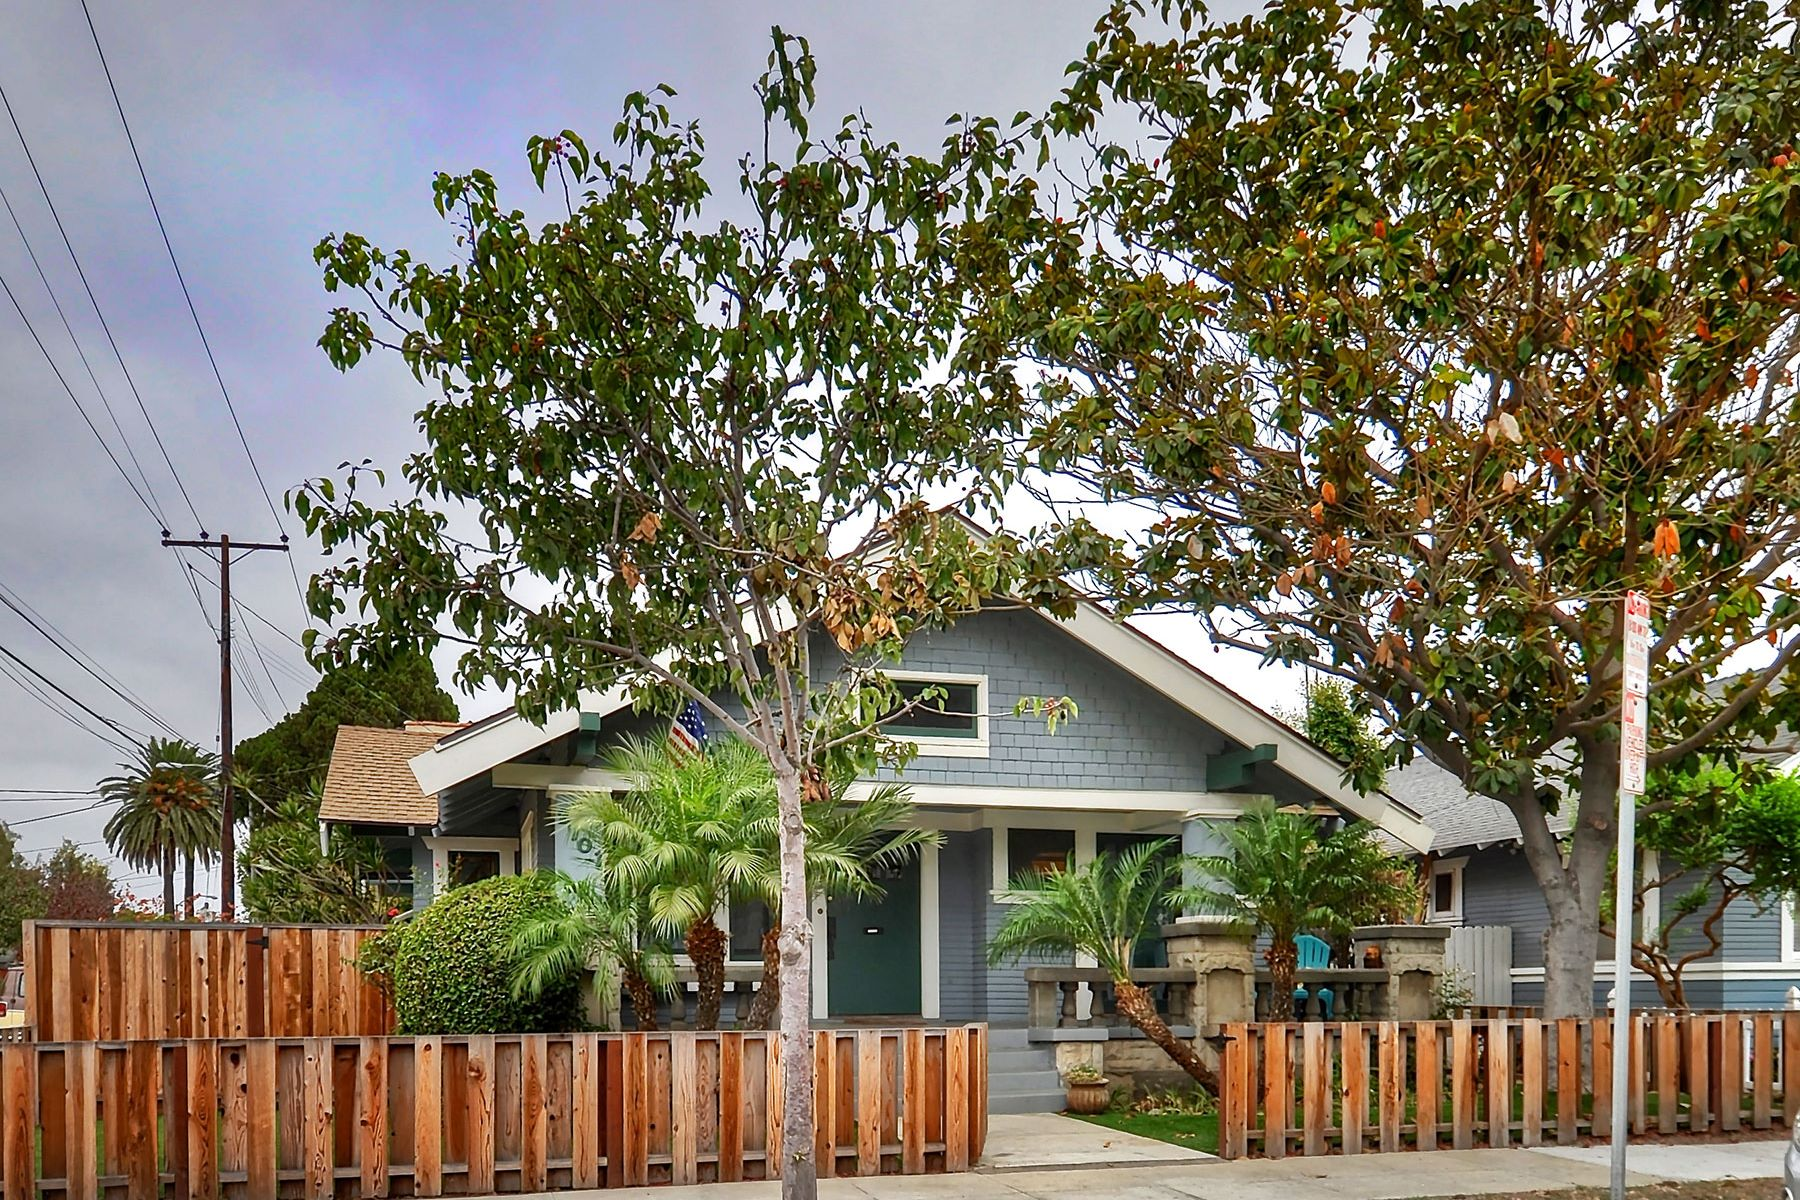 Single Family Home for Sale at 2701 E 3rd Street Long Beach, California 90814 United States